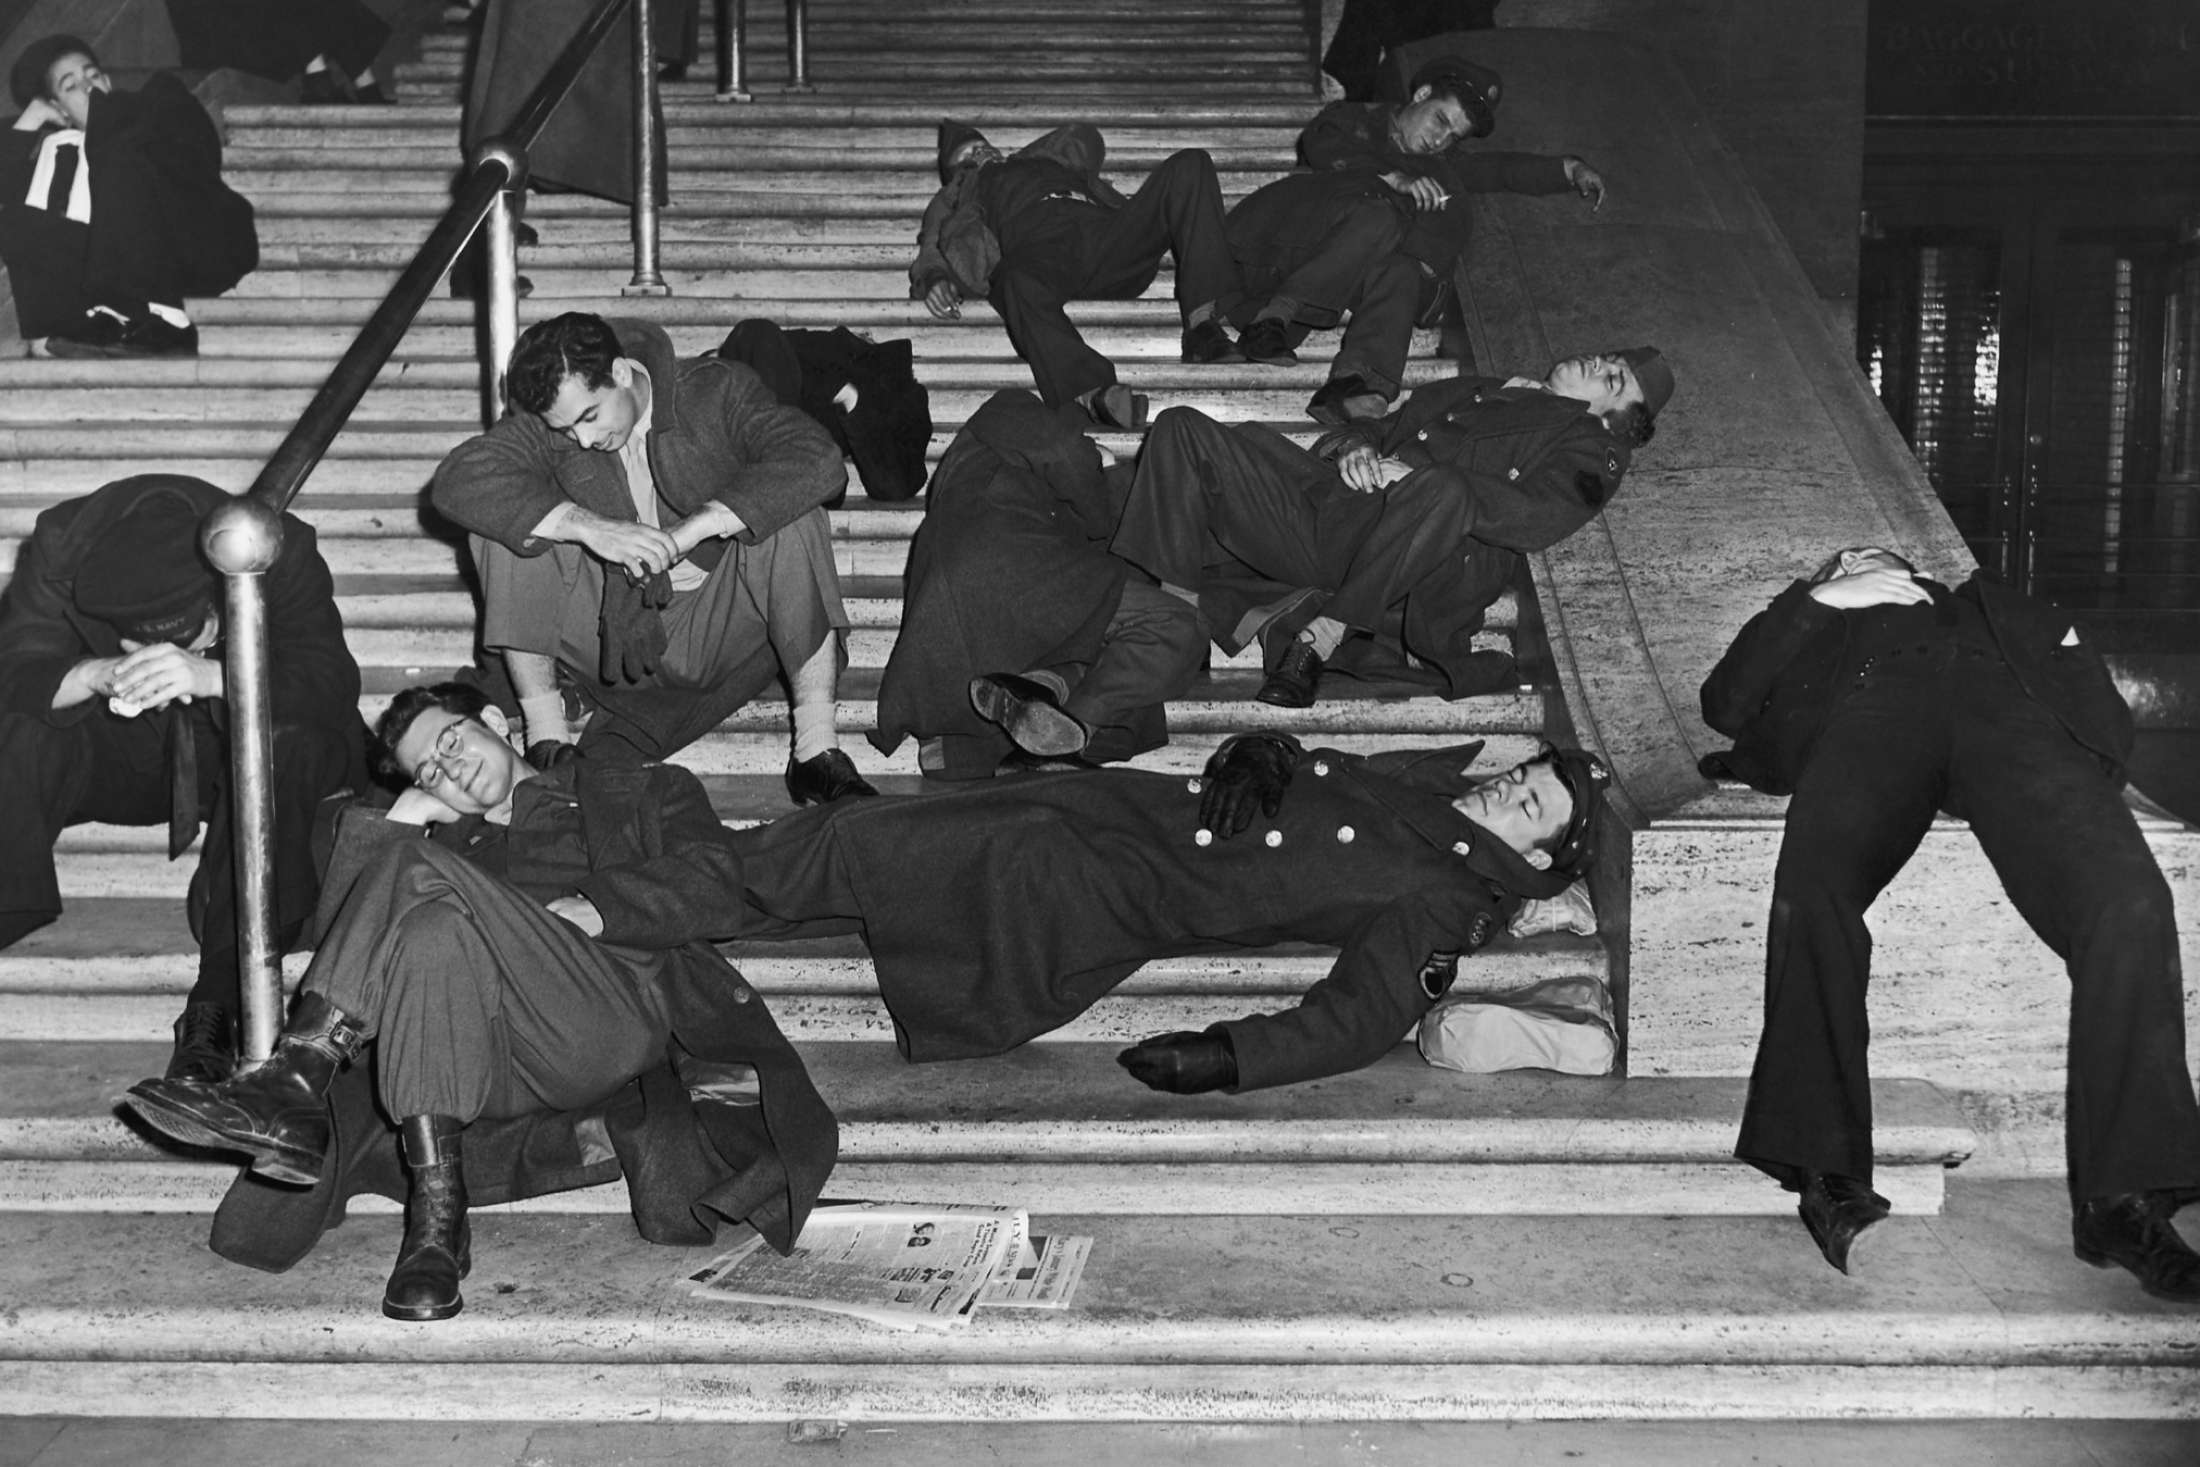 Revelers recovering from New Years Eve celebrations on the steps of Grand Central Station, New York, circa 1940.